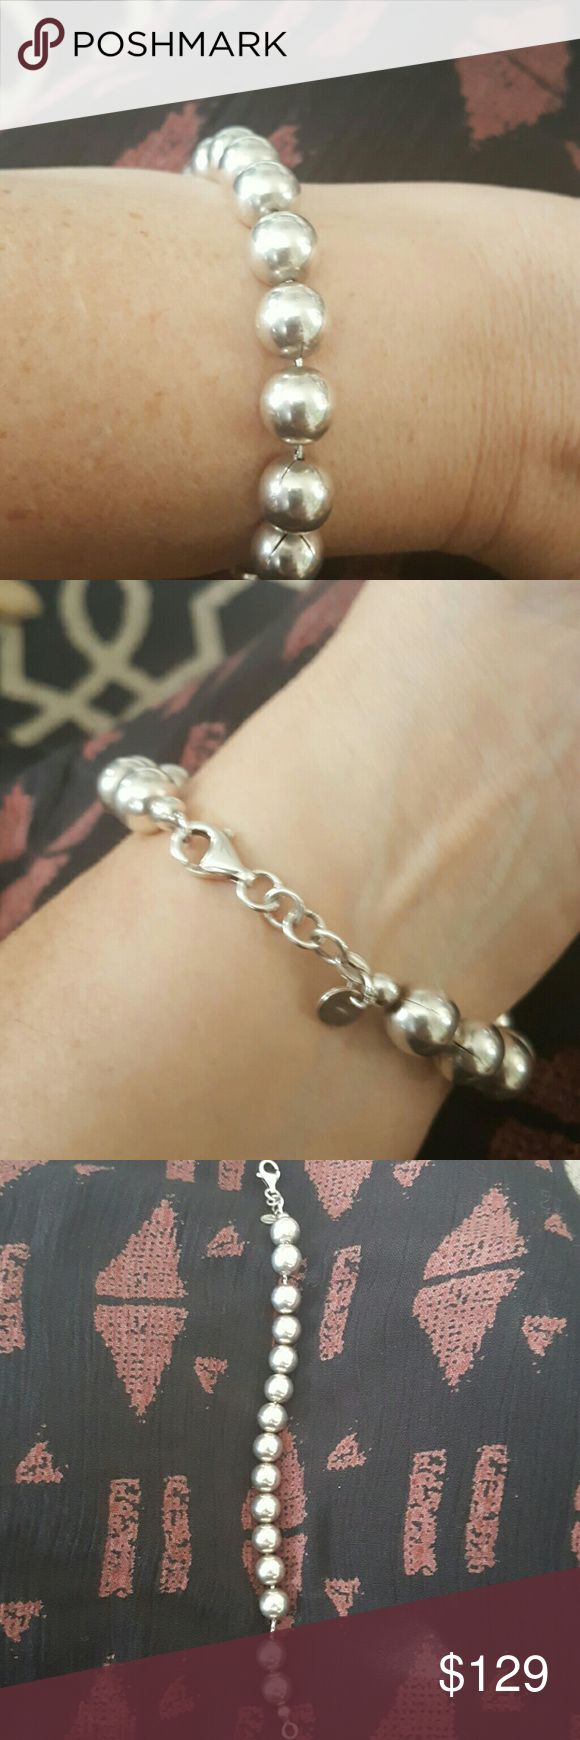 Tiffany bracelet This is the Tiffany bracelet it's 8 inches long the large beads Tiffany & Co. Jewelry Bracelets